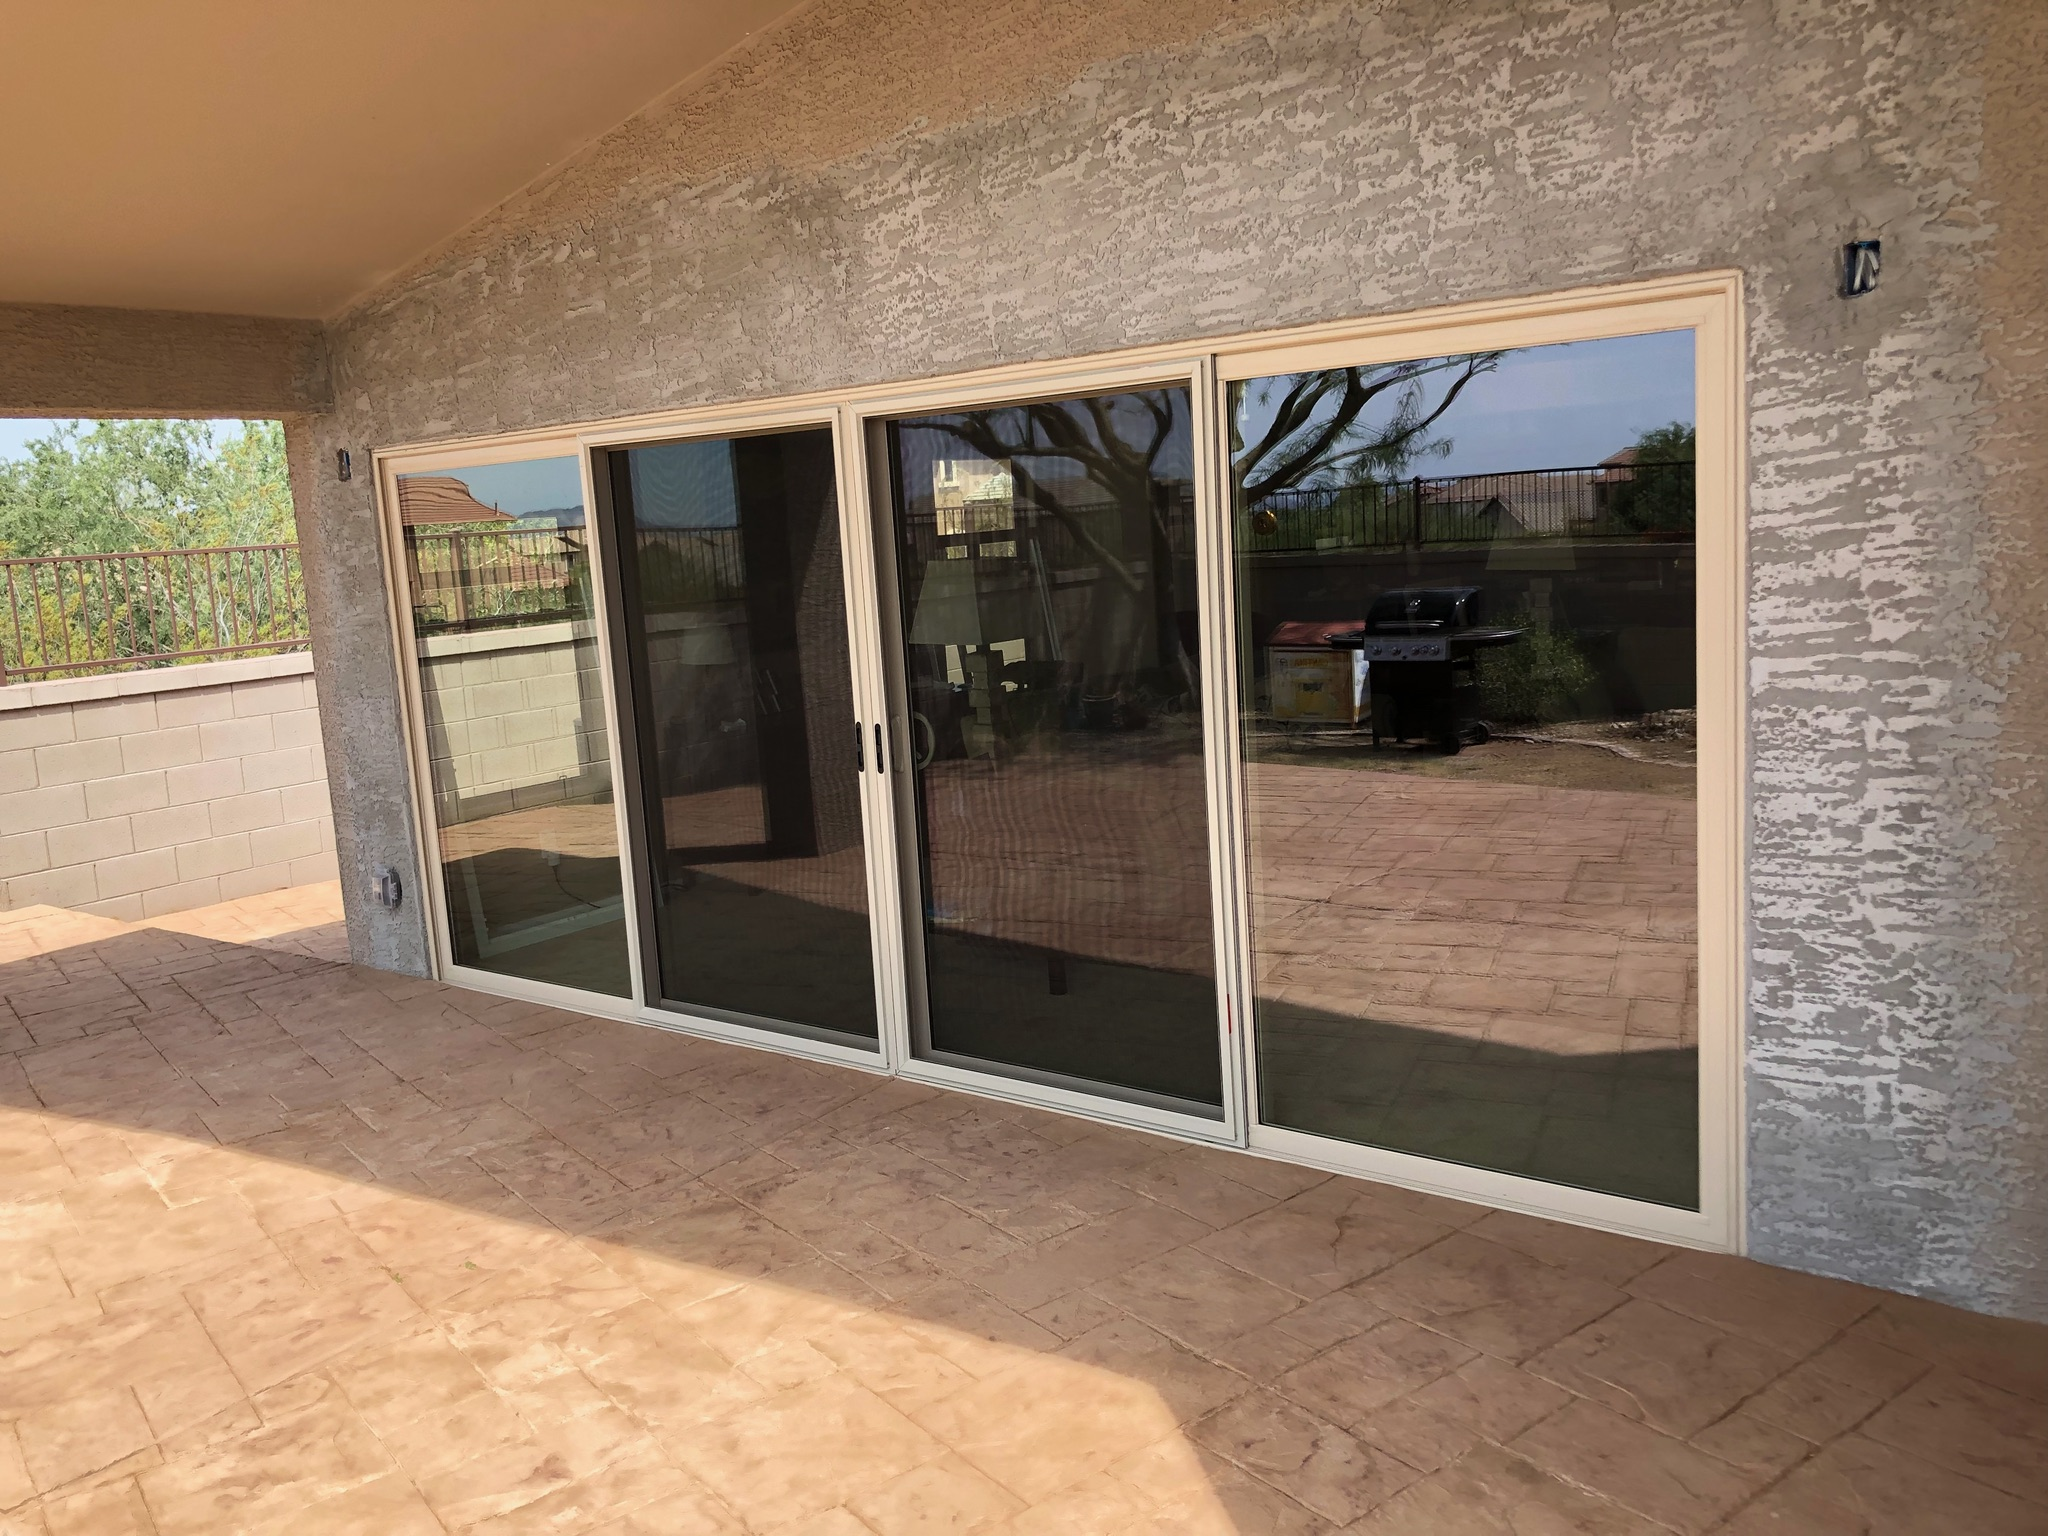 Arizona Window and Door in Scottsdale and Tucson showing sliding patio french doors